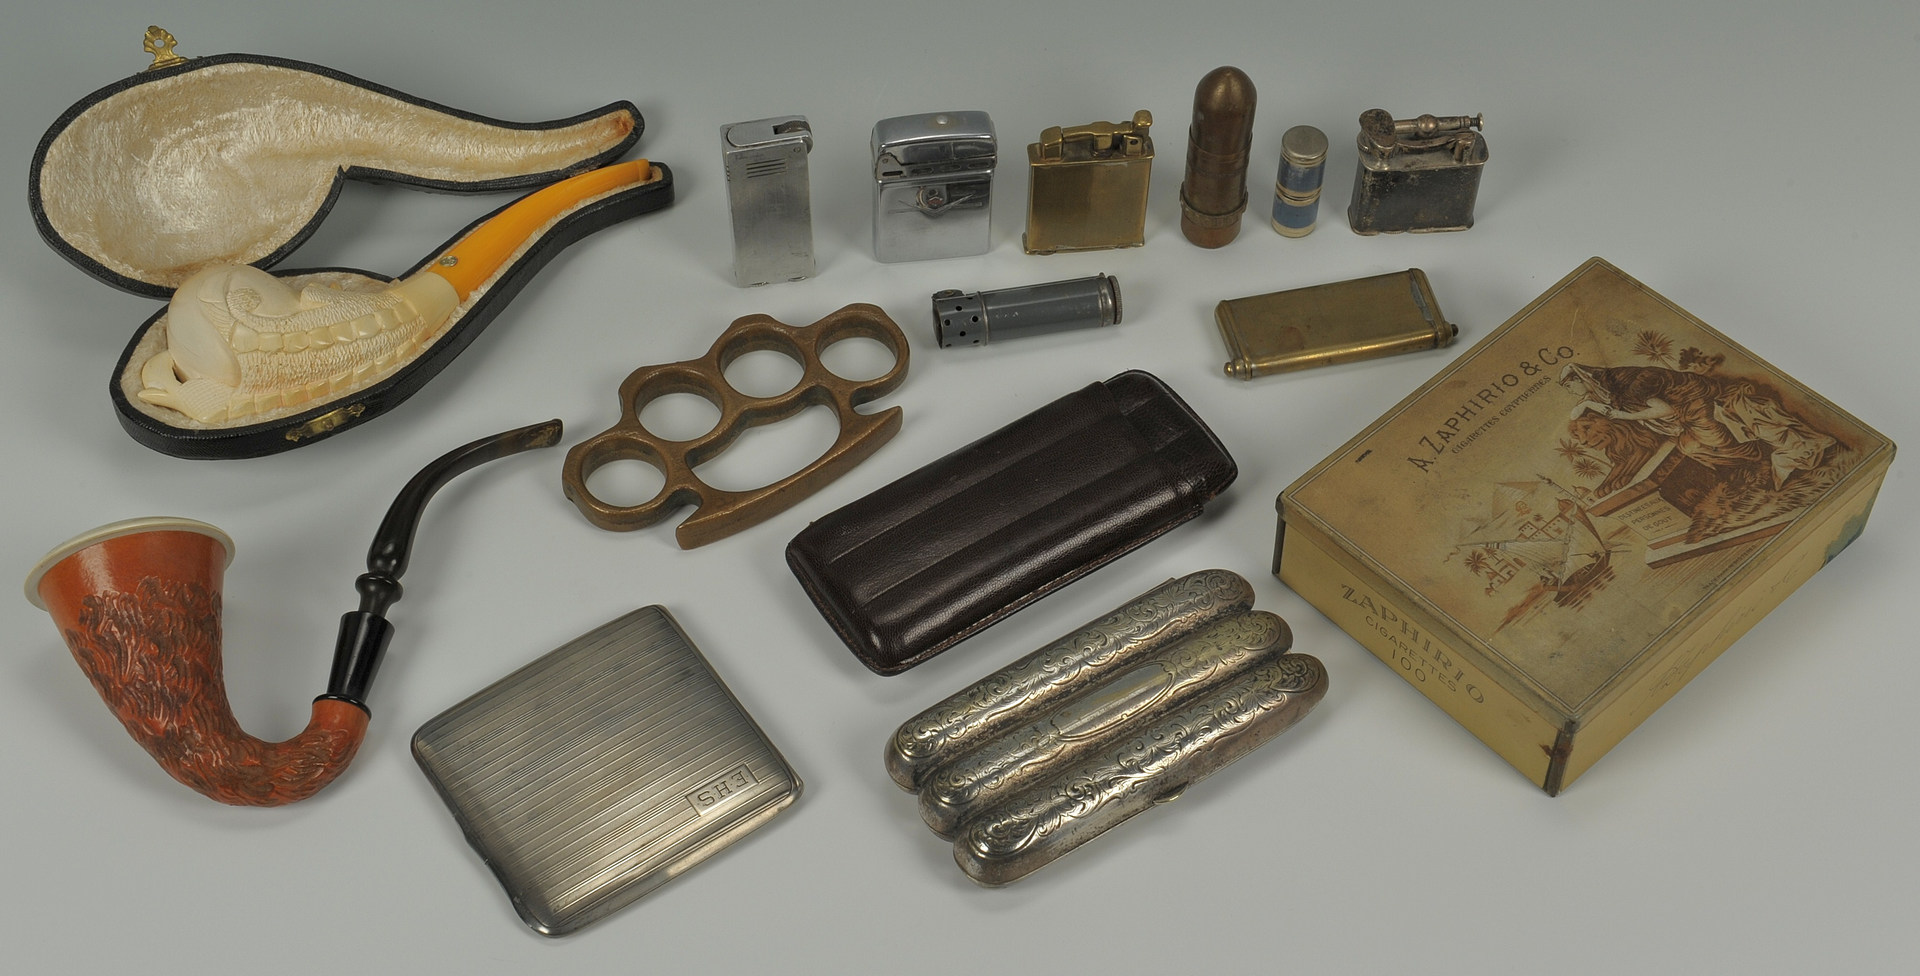 Lot 374: Lot of smoking related items and pr brass knuckles